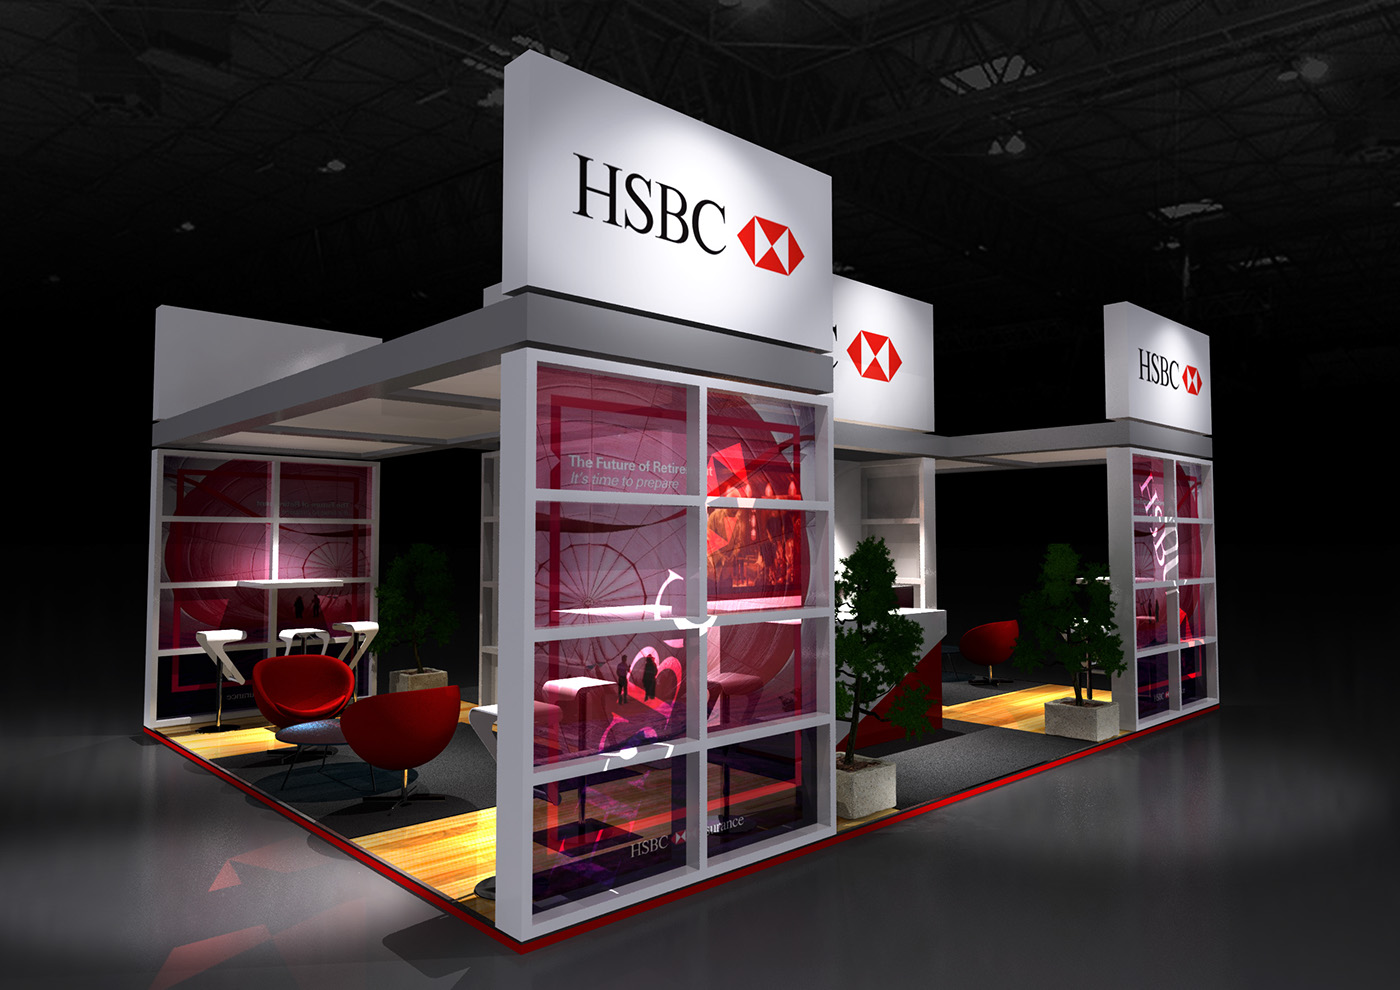 Exhibition Stand Design Download : Hsbc exhibition stand design d visualisation on behance